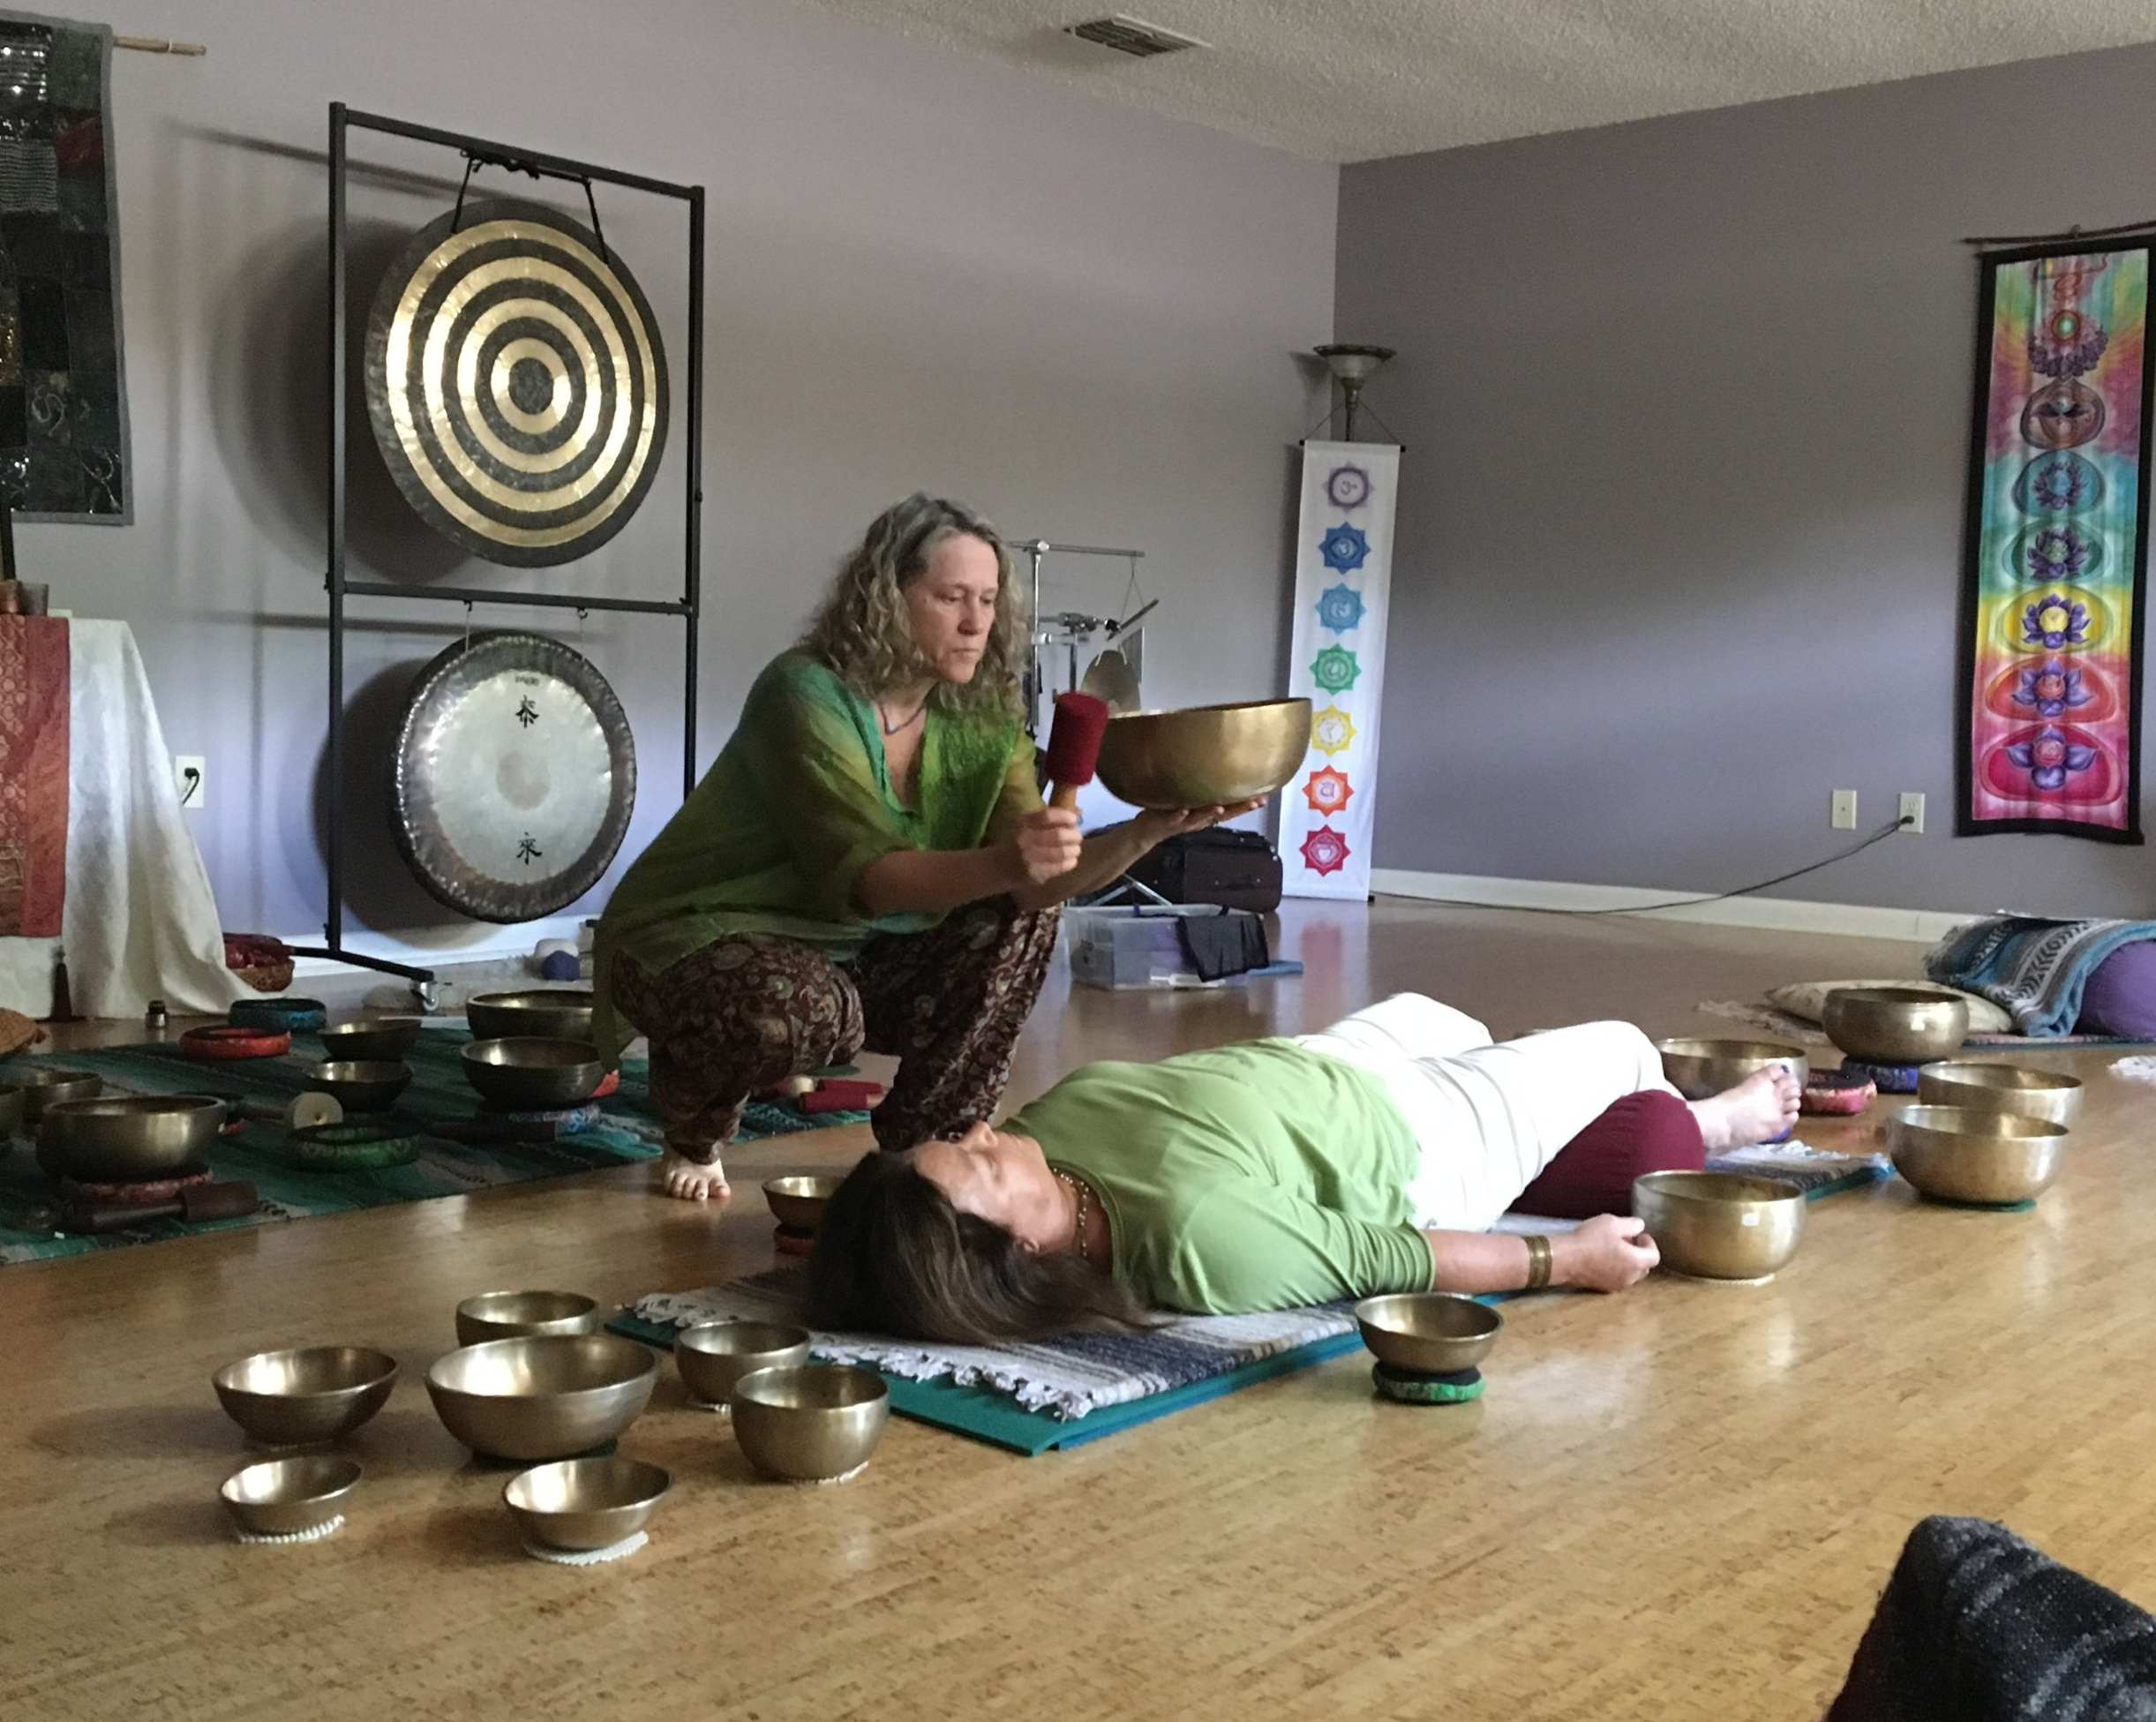 Giving a demo sound session -Healing With Tibetan Singing Bowls workshop- Tallahassee, FL 2019